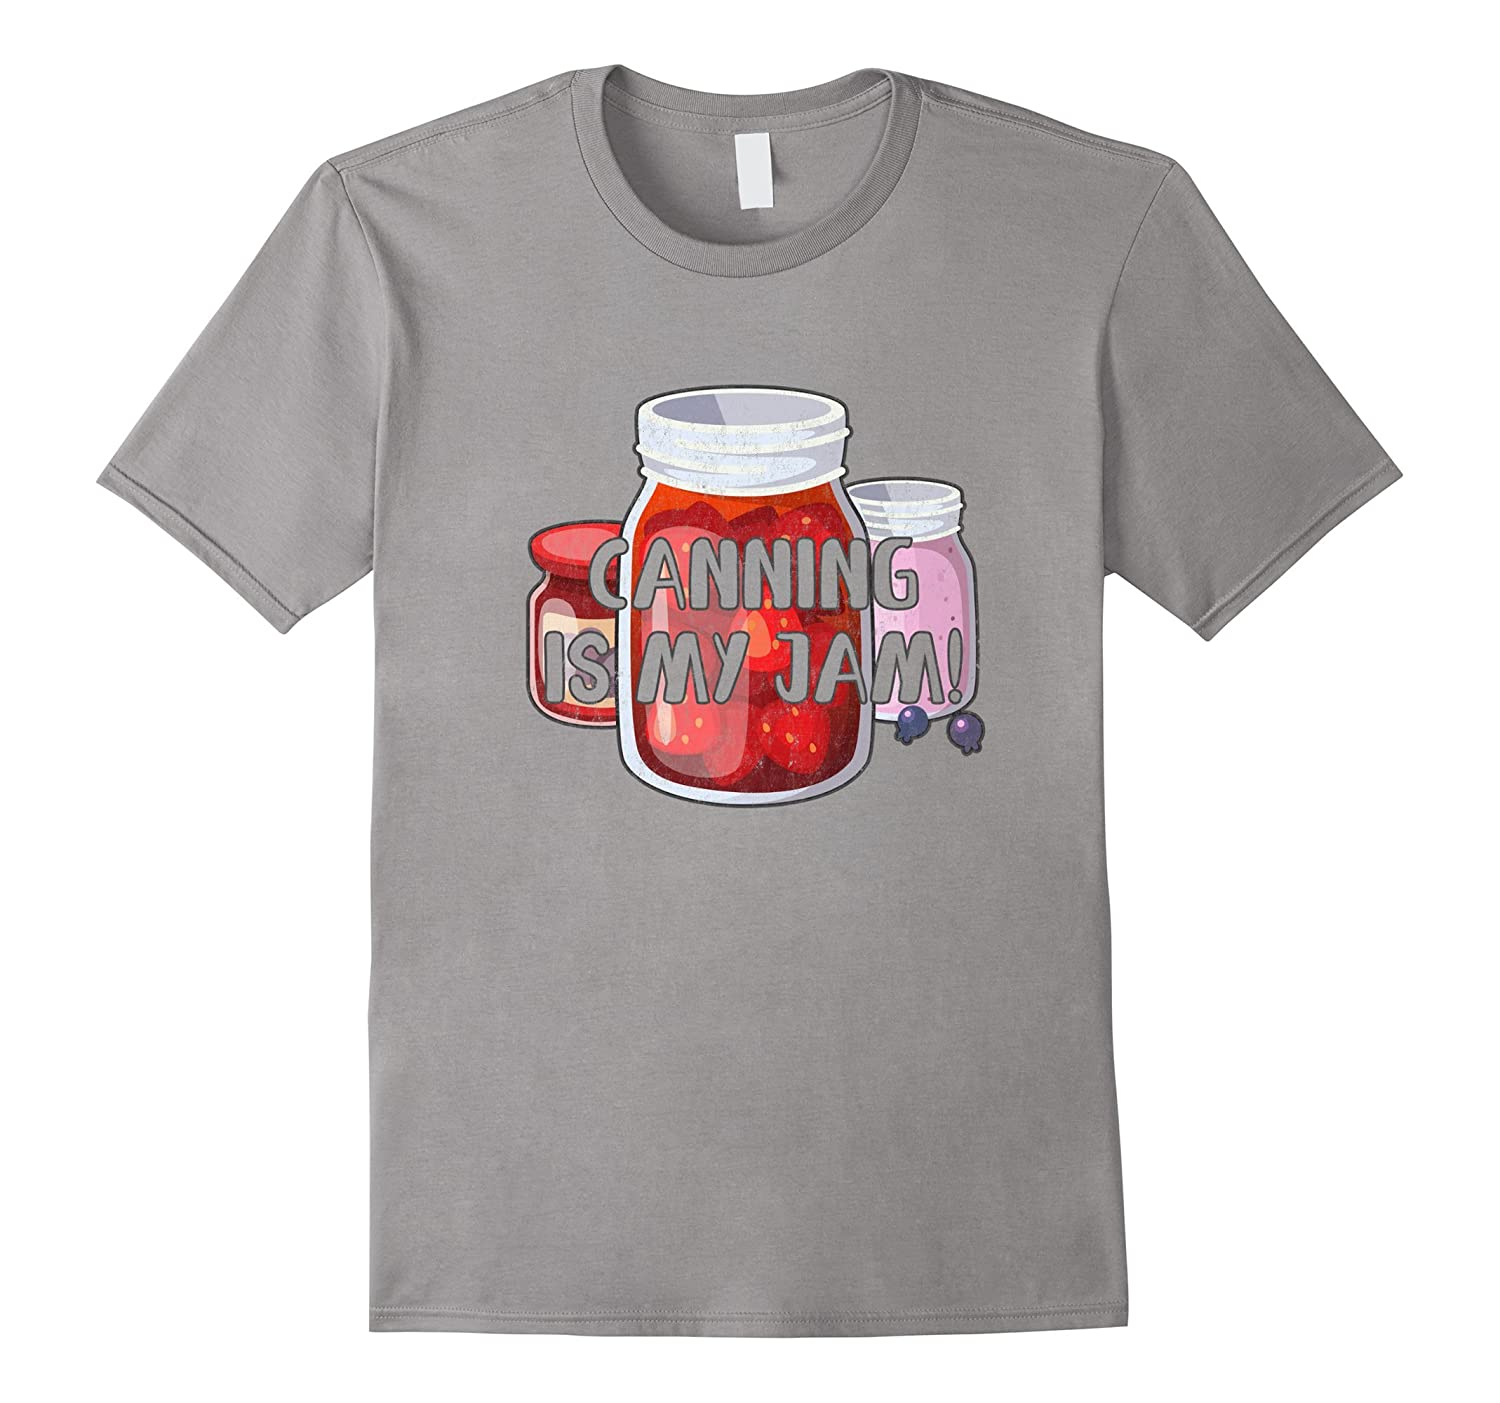 Canning Is My Jam – Funny Canning Pun T-Shirt